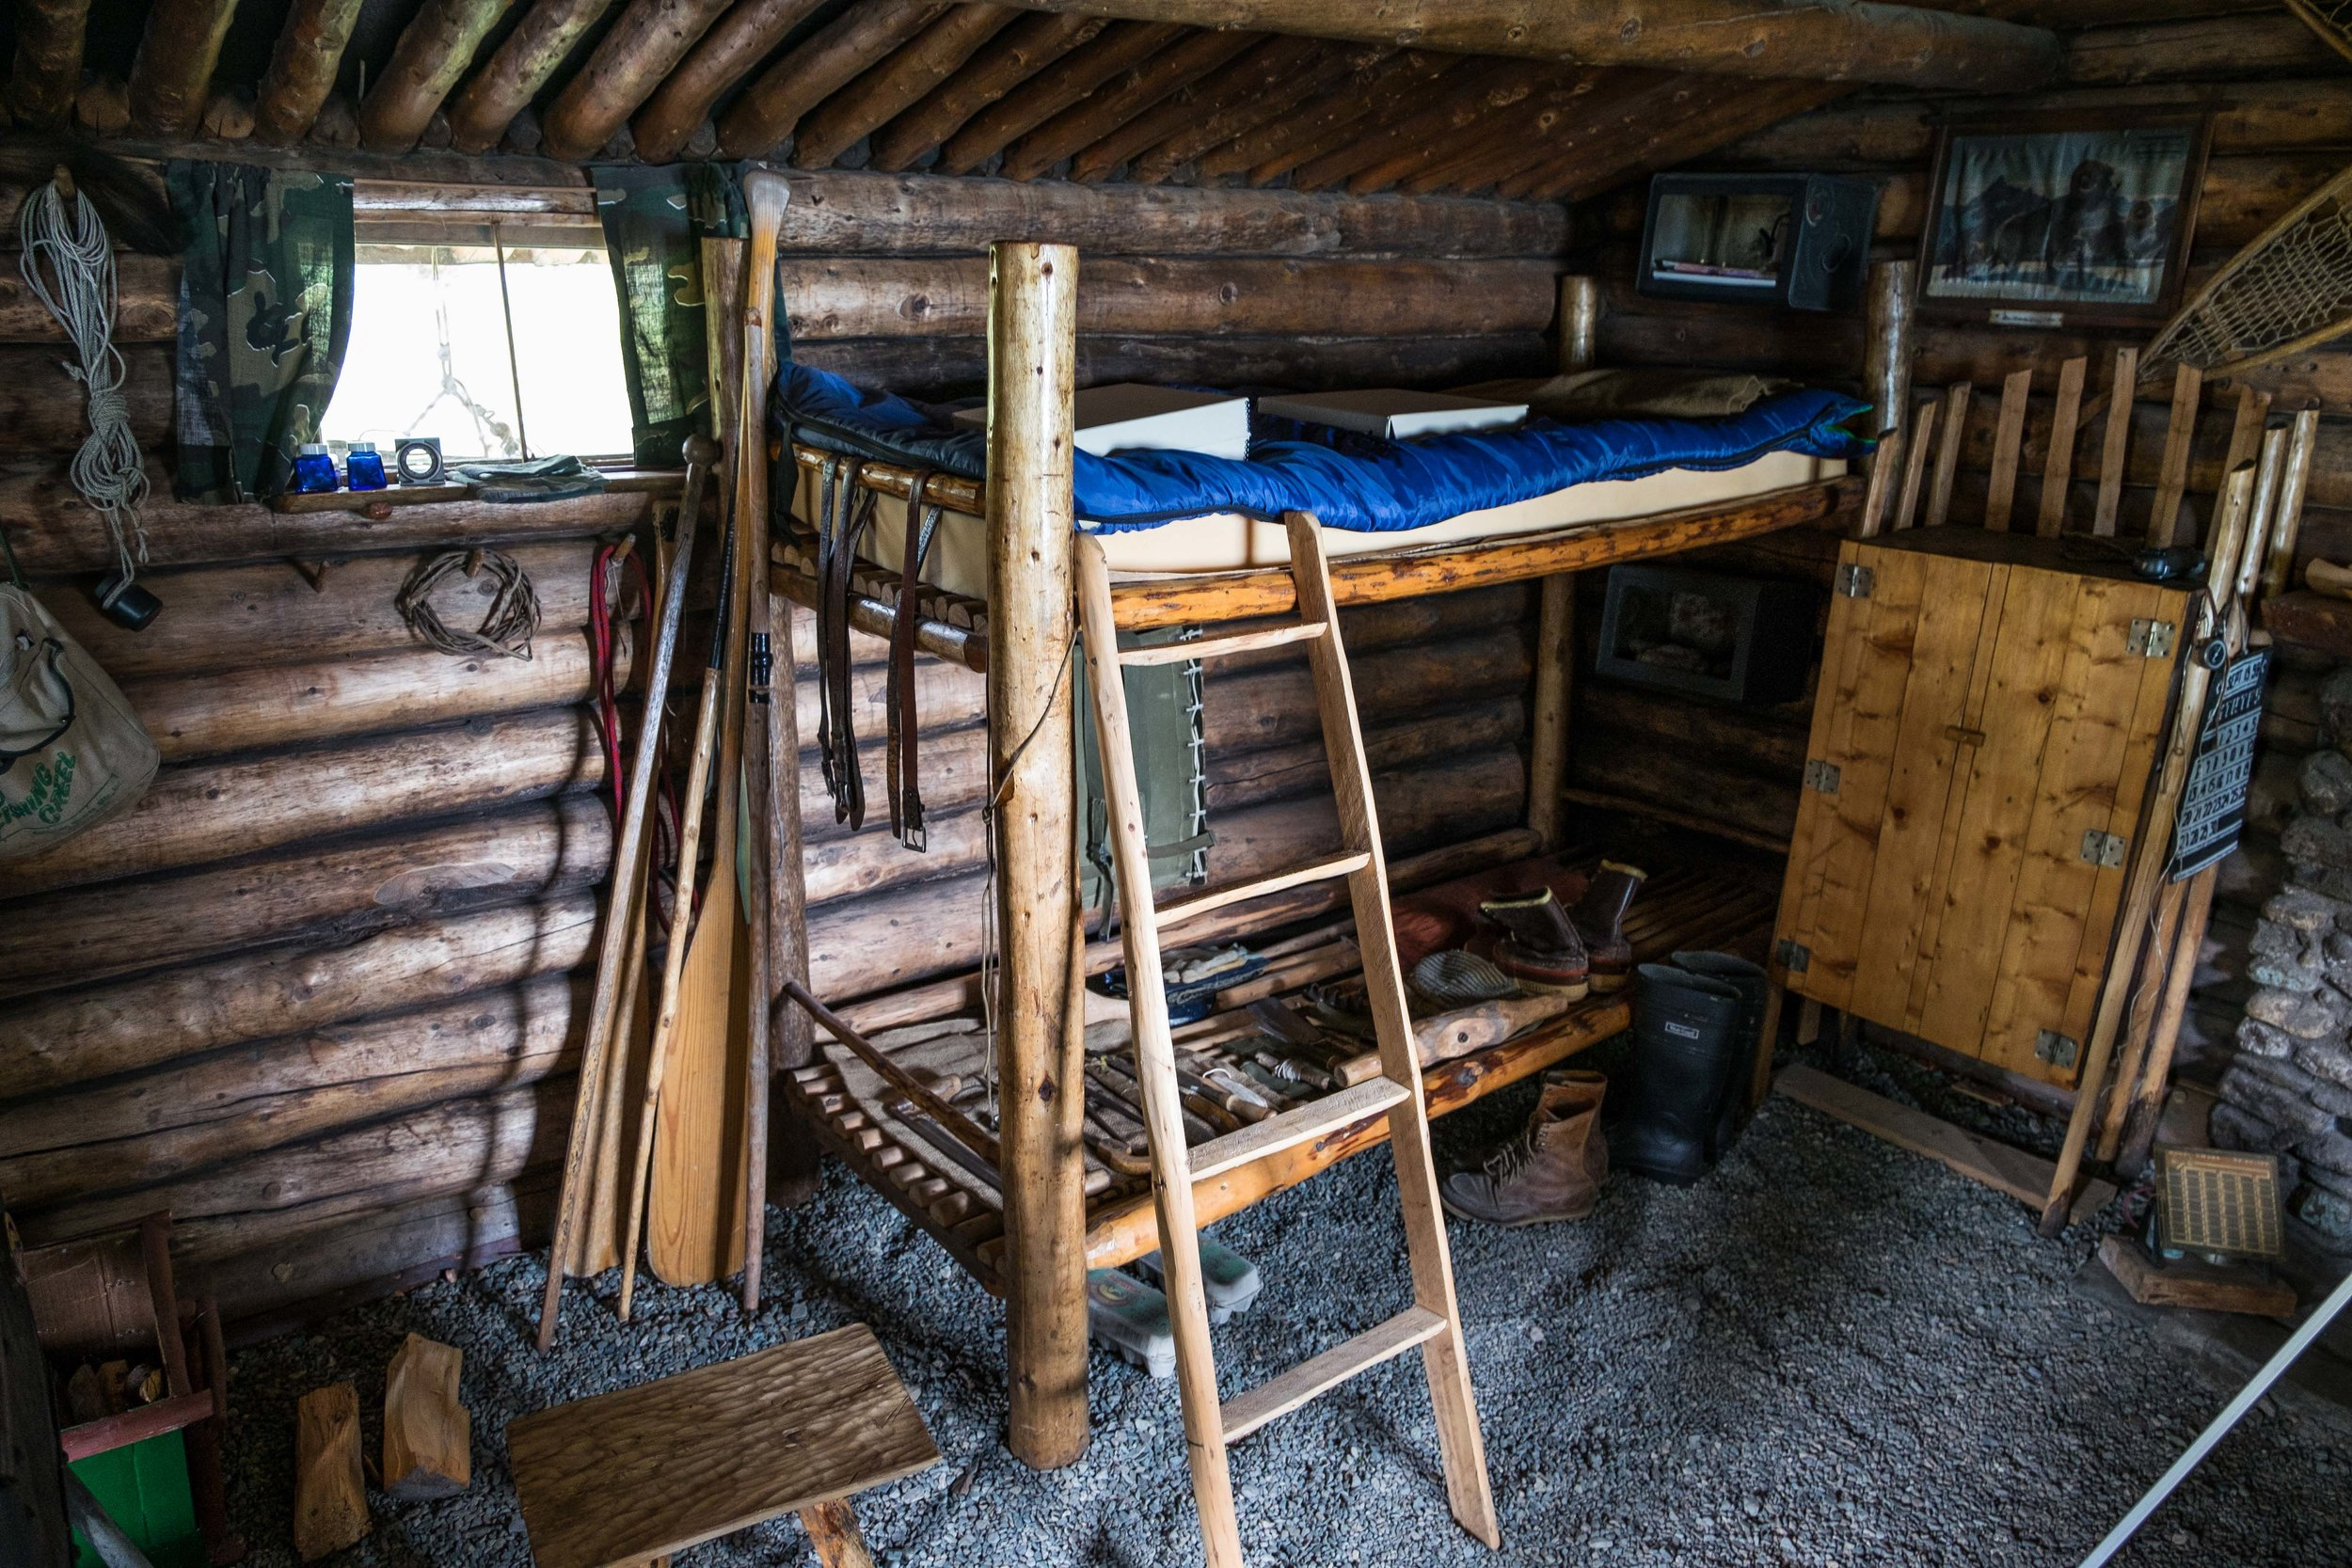 Proennekke spent most of his life in this one-room cabin.